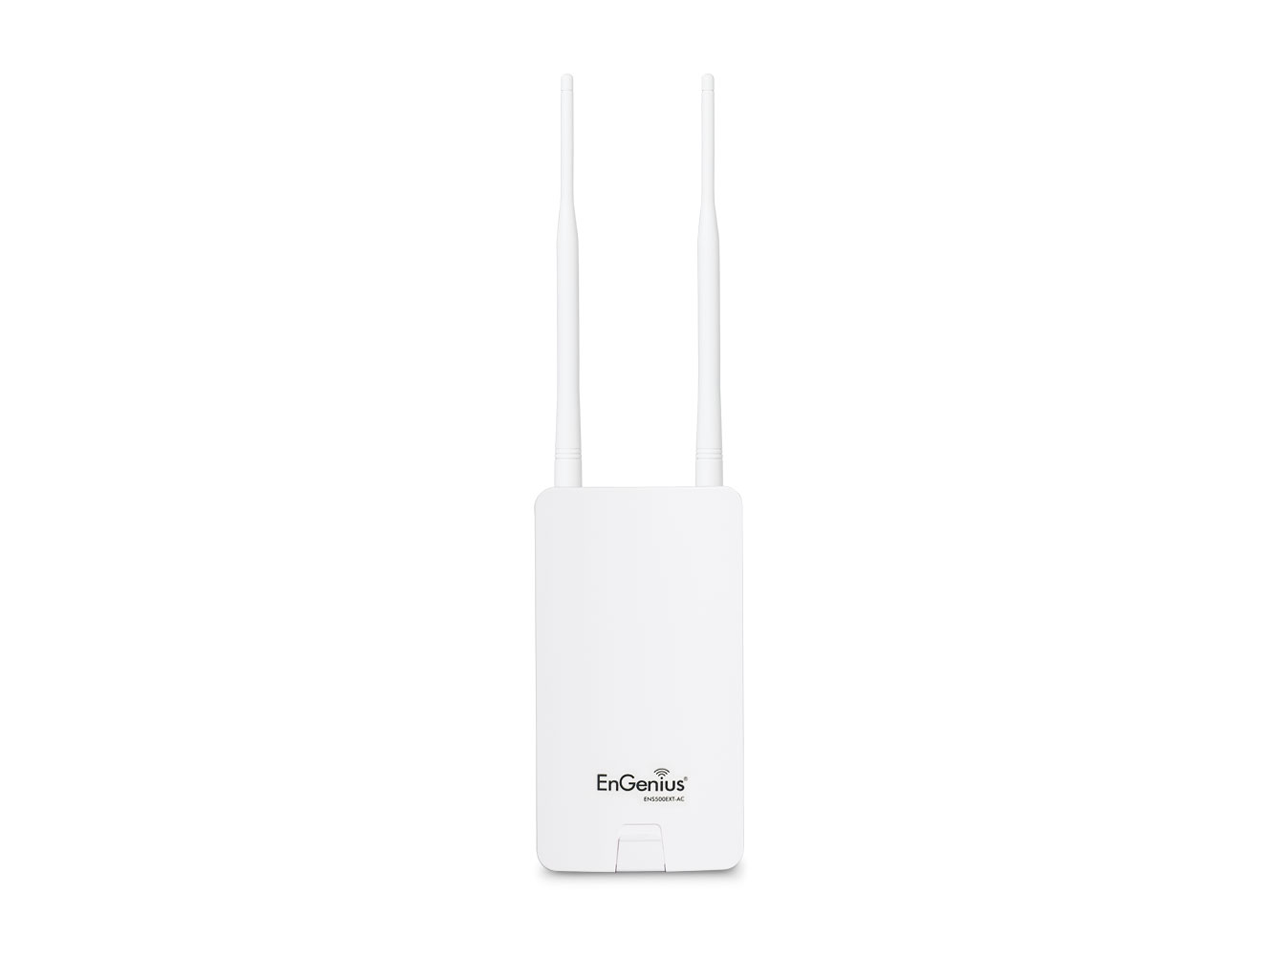 ENGENİUS ENS500EXT-AC - EnTurbo Outdoor 5 GHz 11ac Wave 2 Wireless Access Point